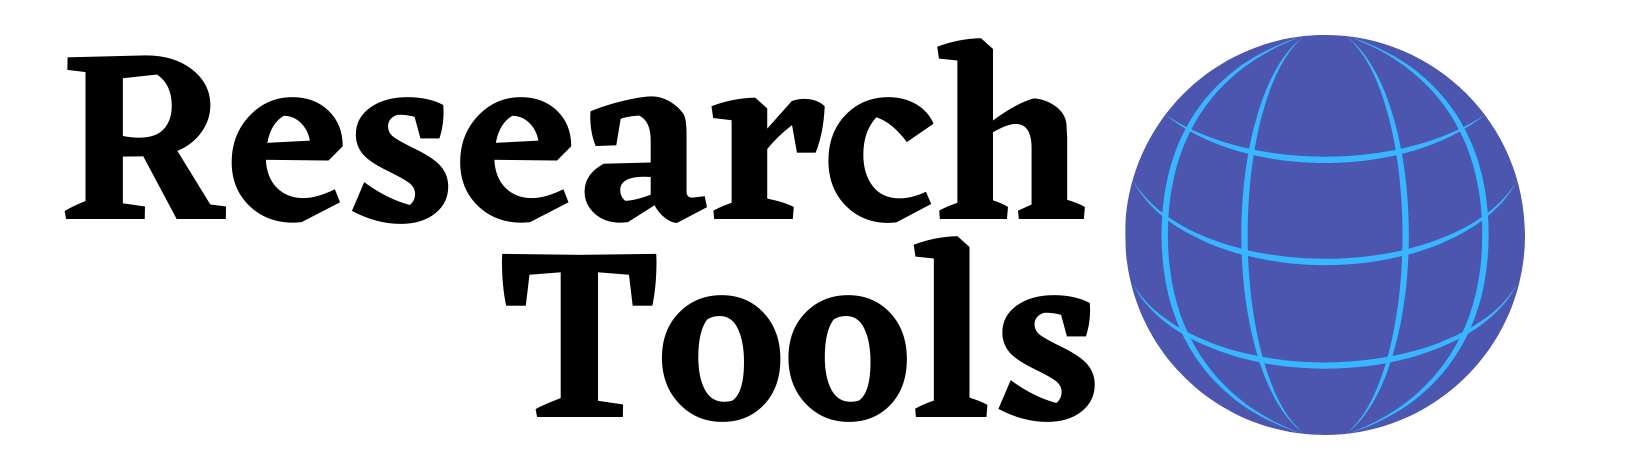 Research tools banner